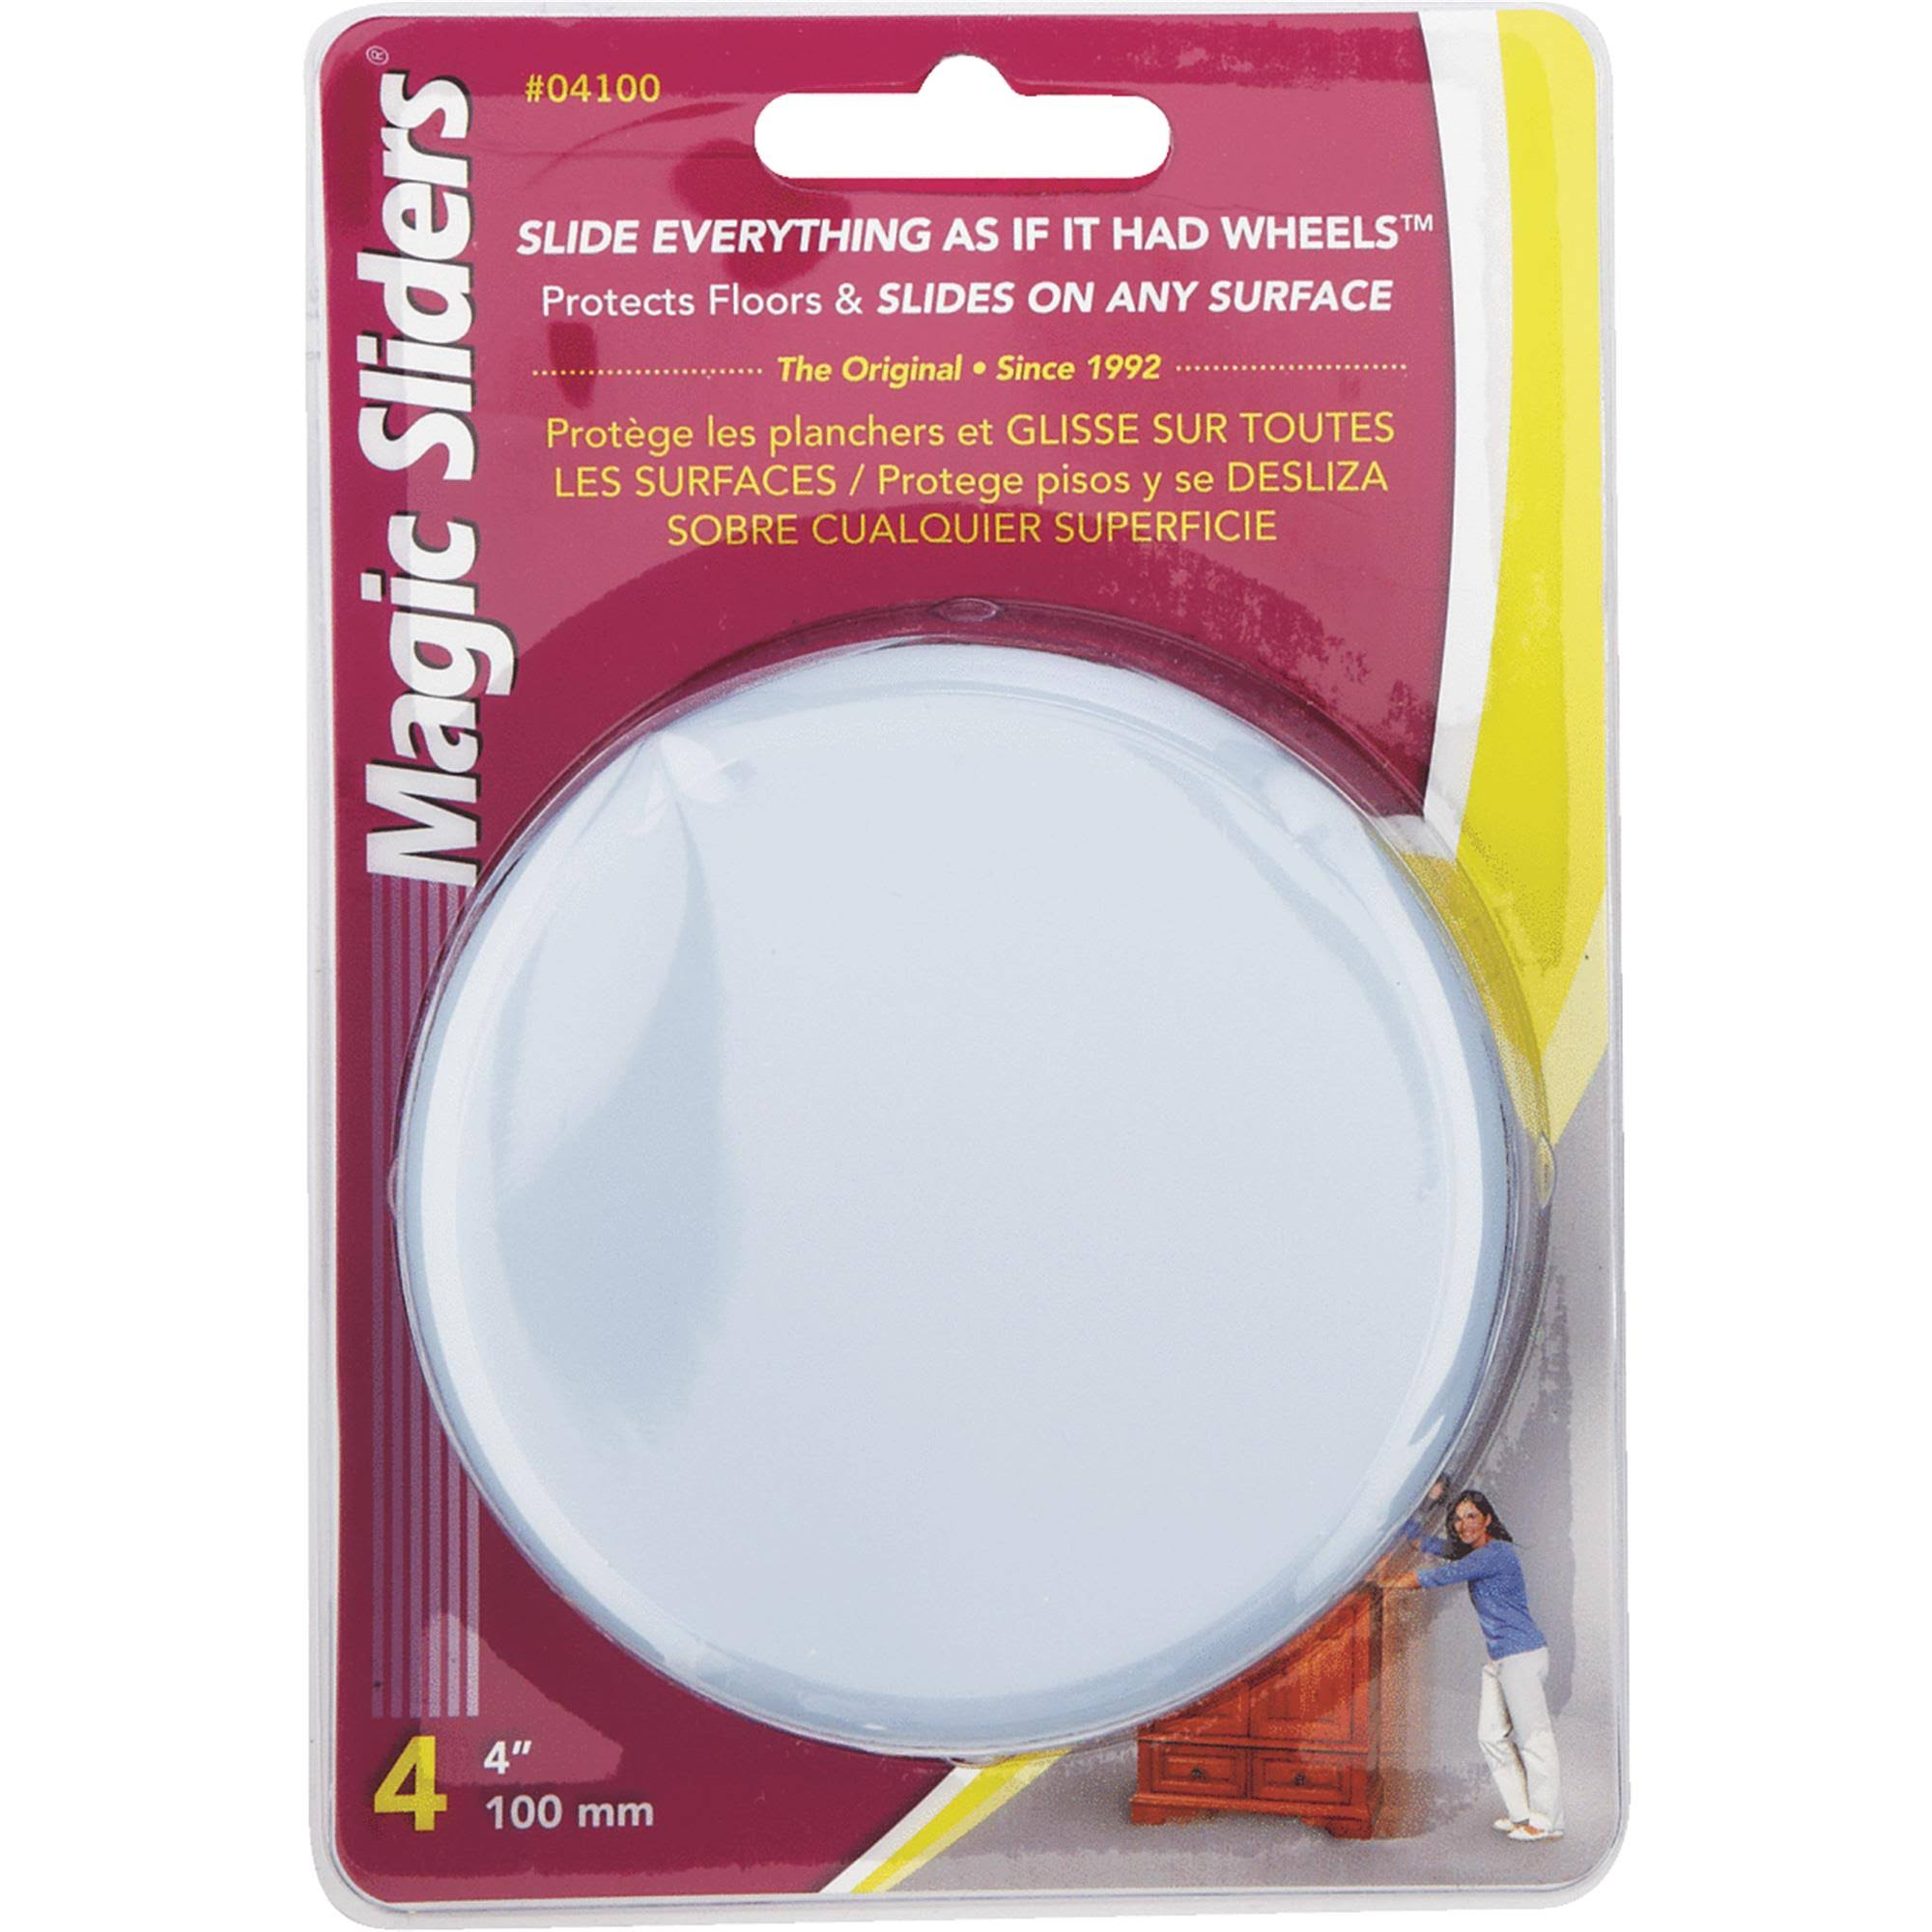 Magic Sliders Round Magic Sliding Casters - Self-Adhesive, Card of 4, 100mm